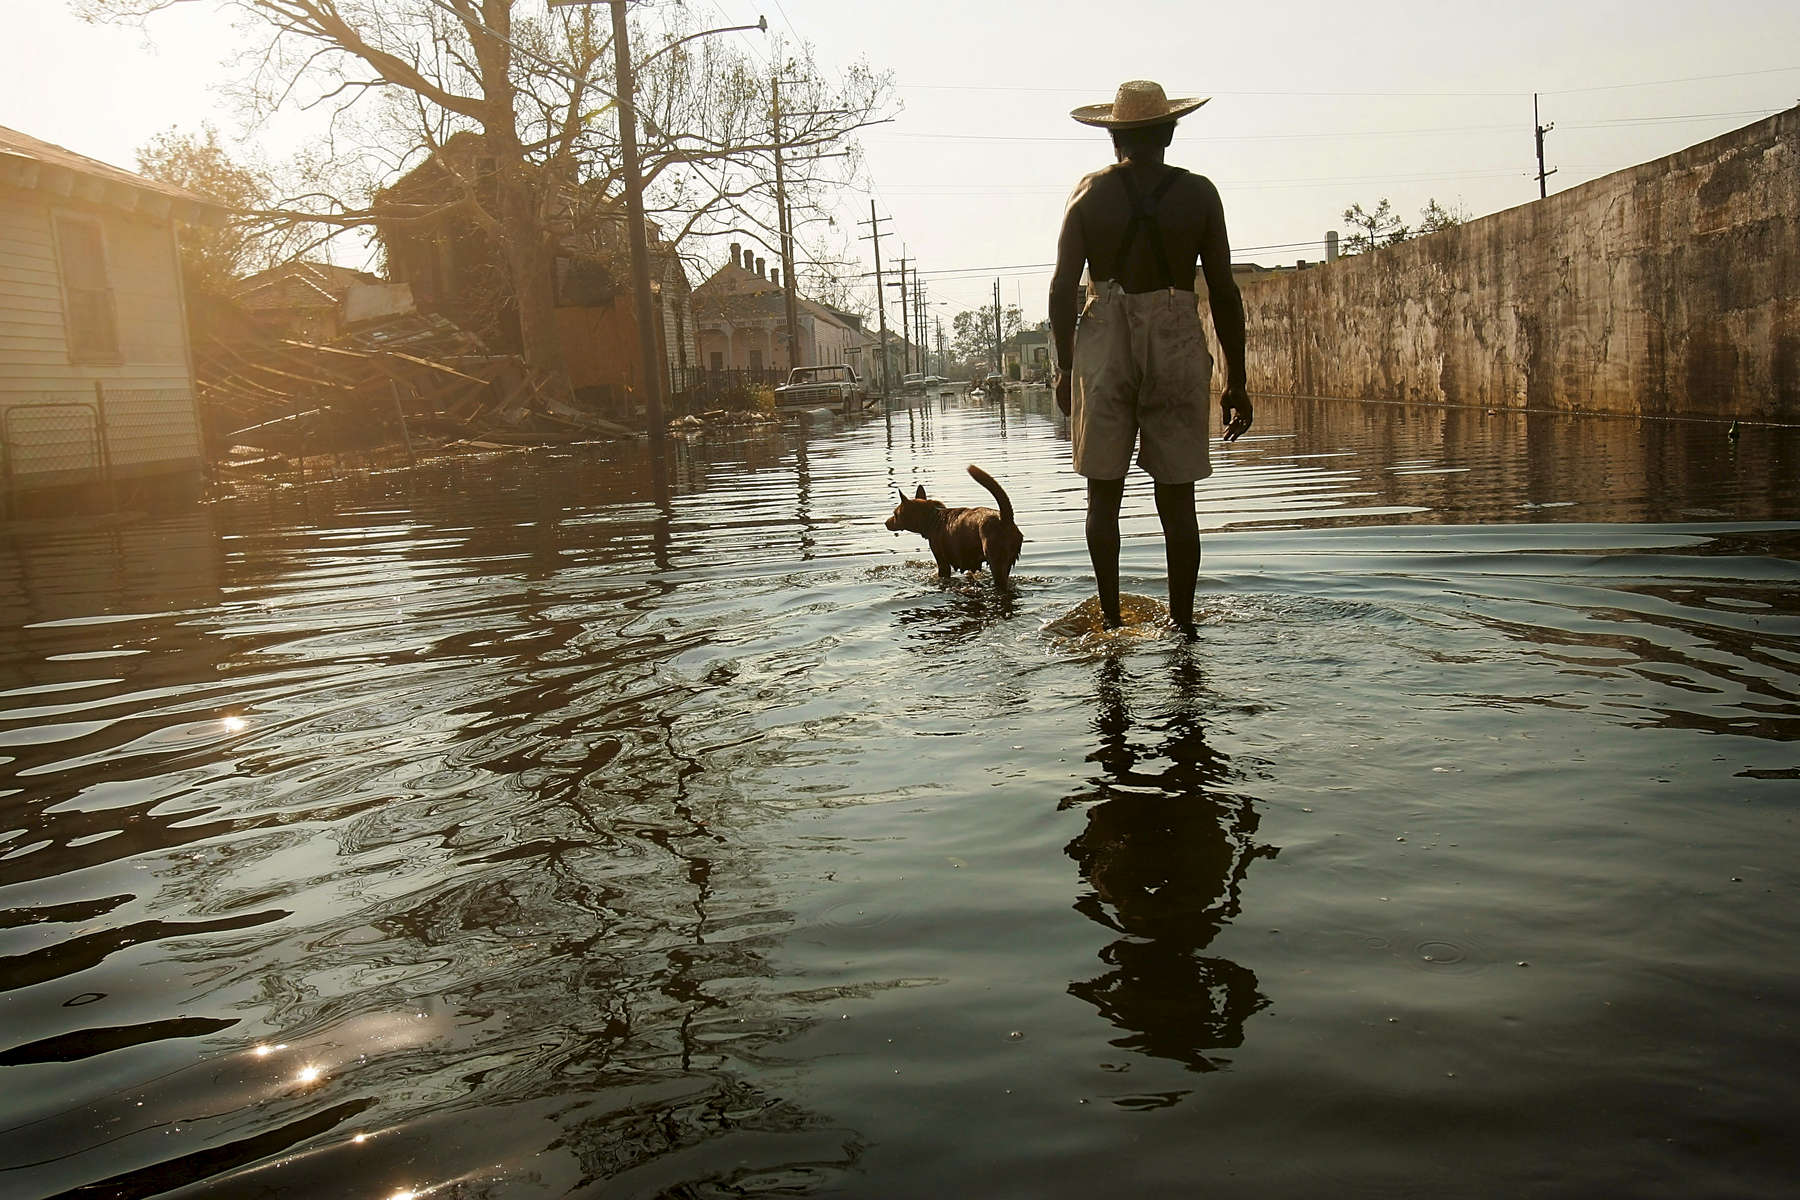 9/4/05 -- New Orleans, Louisiana -- 9th Ward -- Paul Garrett, 56, and his neighbor's dog, Rusty, whom he rescued during Hurricane Kartina, walk the streets of the 9th ward on their way home. {quote}Everybody left,{quote} said Garrett, a former longshoreman. {quote}I stayed.{quote} Garrett said he stayed to help the neighborhood's elderly and sick. {quote}Everybody can't leave,{quote} he said. {quote}I'm lookin' [sic] out for people who can't help themselves. Especially the older people. See, I'm just a 'junior citizen.' They're 'senior citizens',{quote} he continued. {quote}You got a lot of people in this city who don't care for each other. I feel like we should pull together now instead of apart. It's gotten worse. It's not right,{quote} he said. Photo by Dina Rudick, Globe Staff.